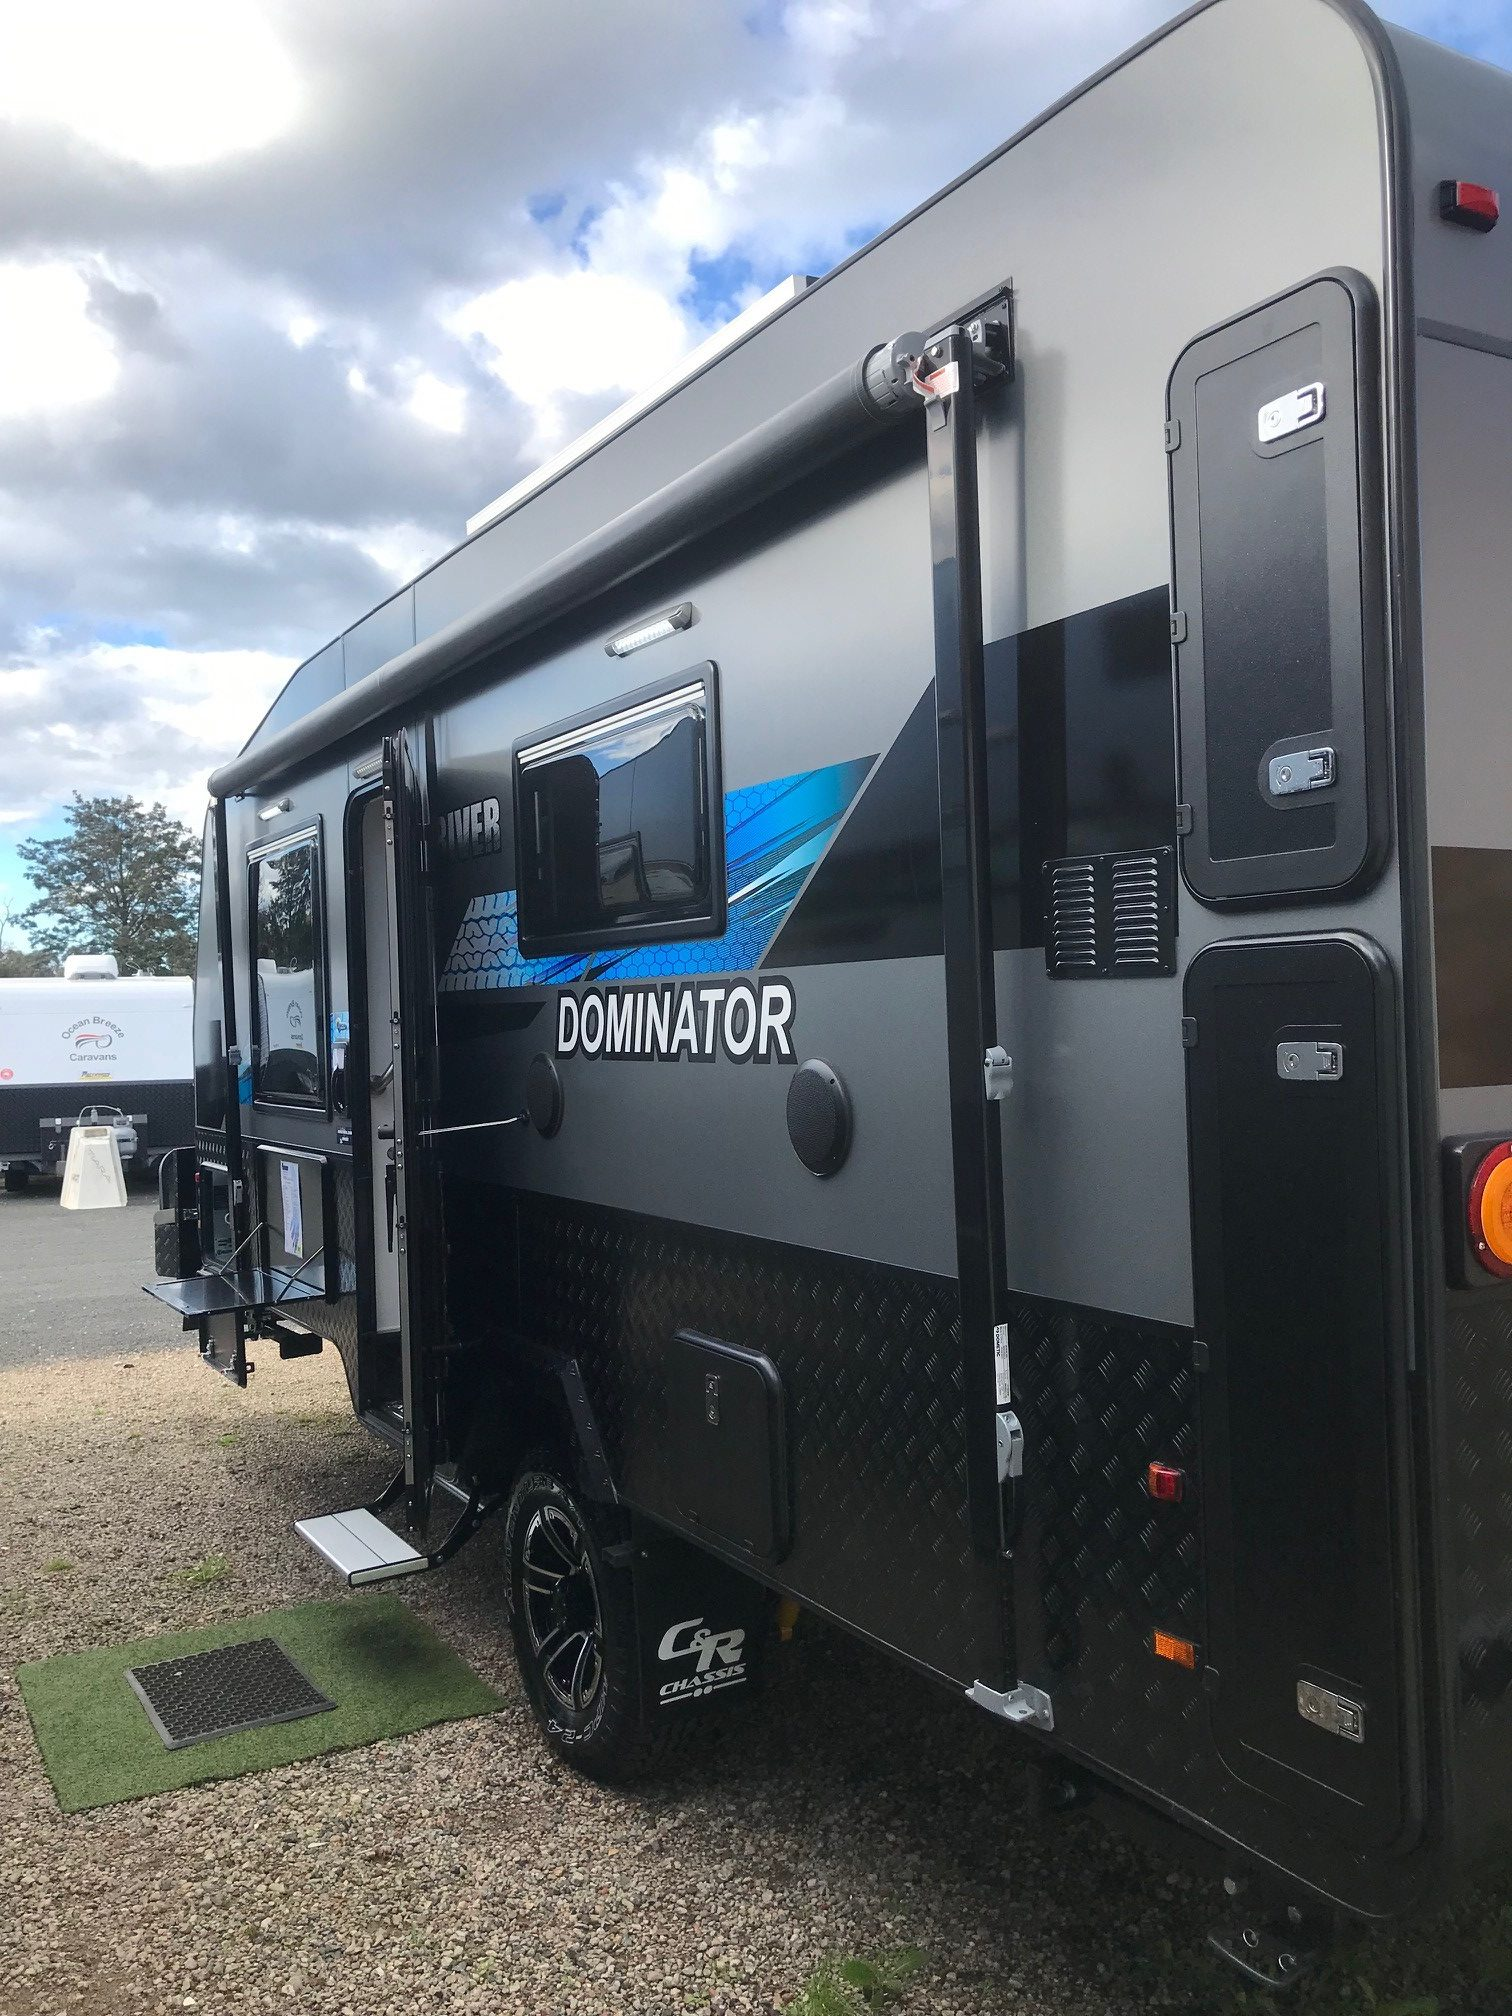 2021 River Dominator 18' with Ensuite (RC21168)